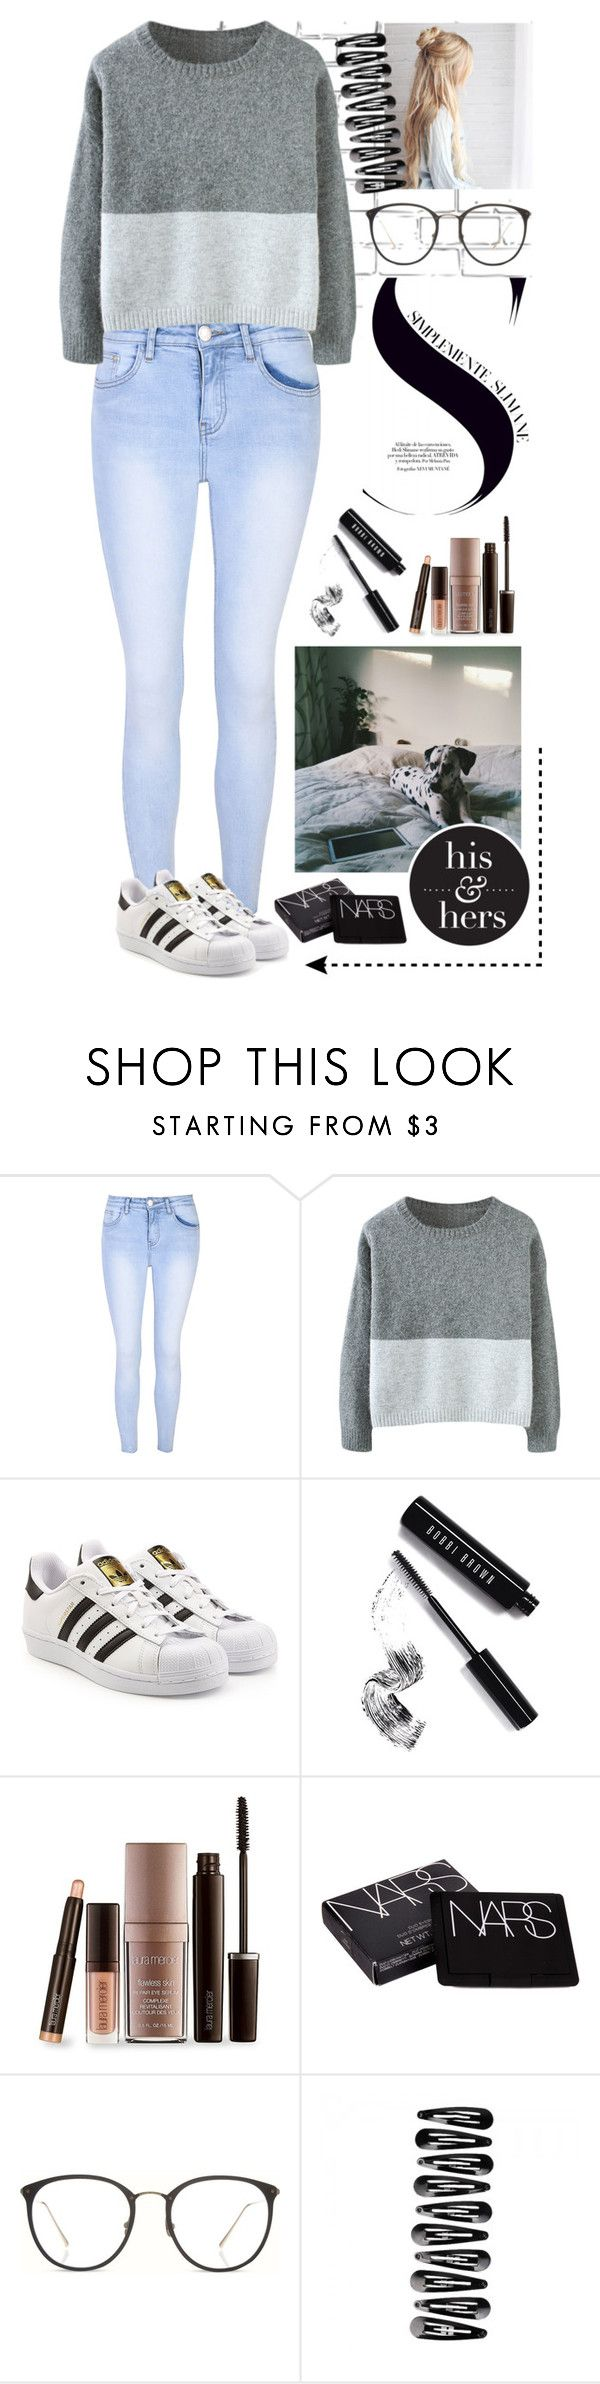 """Sweater Weather :)"" by rhiannonpsayer on Polyvore featuring WALL, Glamorous, adidas Originals, Bobbi Brown Cosmetics, Laura Mercier, NARS Cosmetics and Linda Farrow"